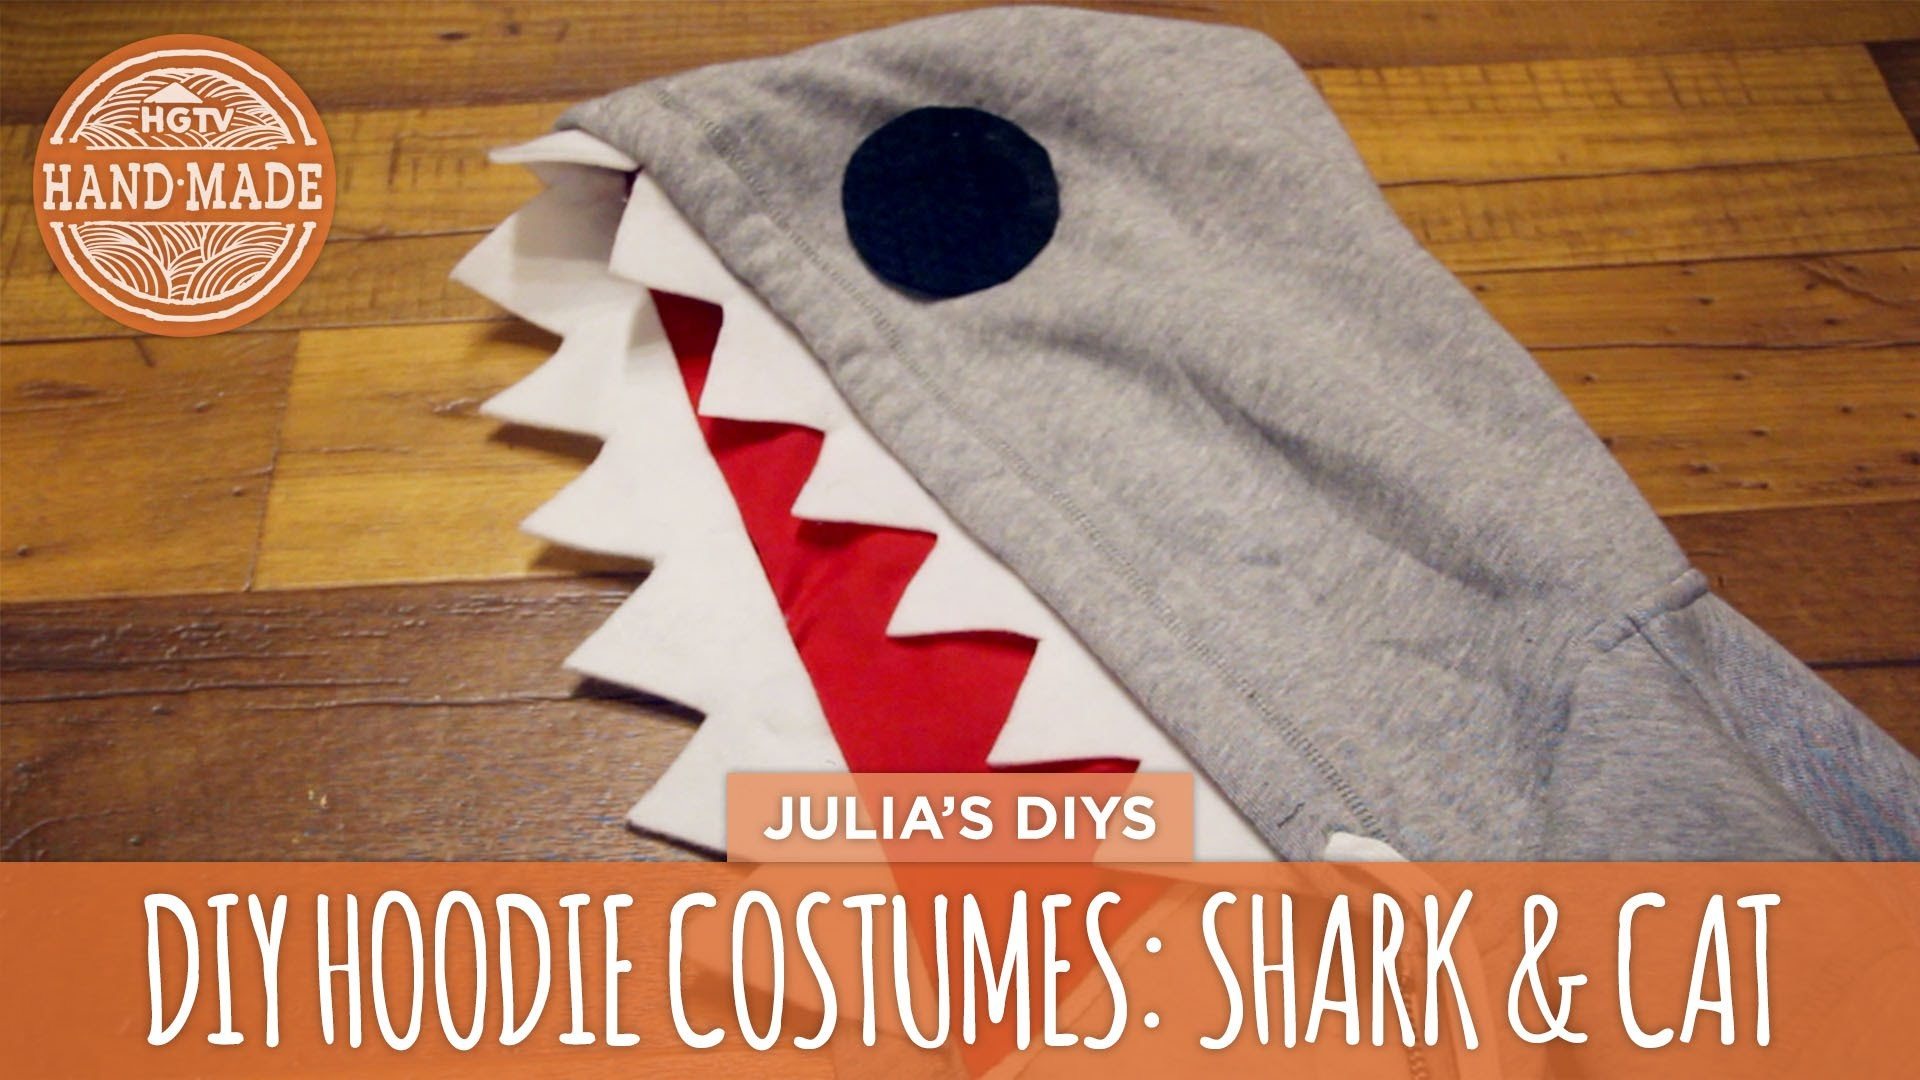 DIY Black Cat & Shark Hoodie Costumes - HGTV Handmade